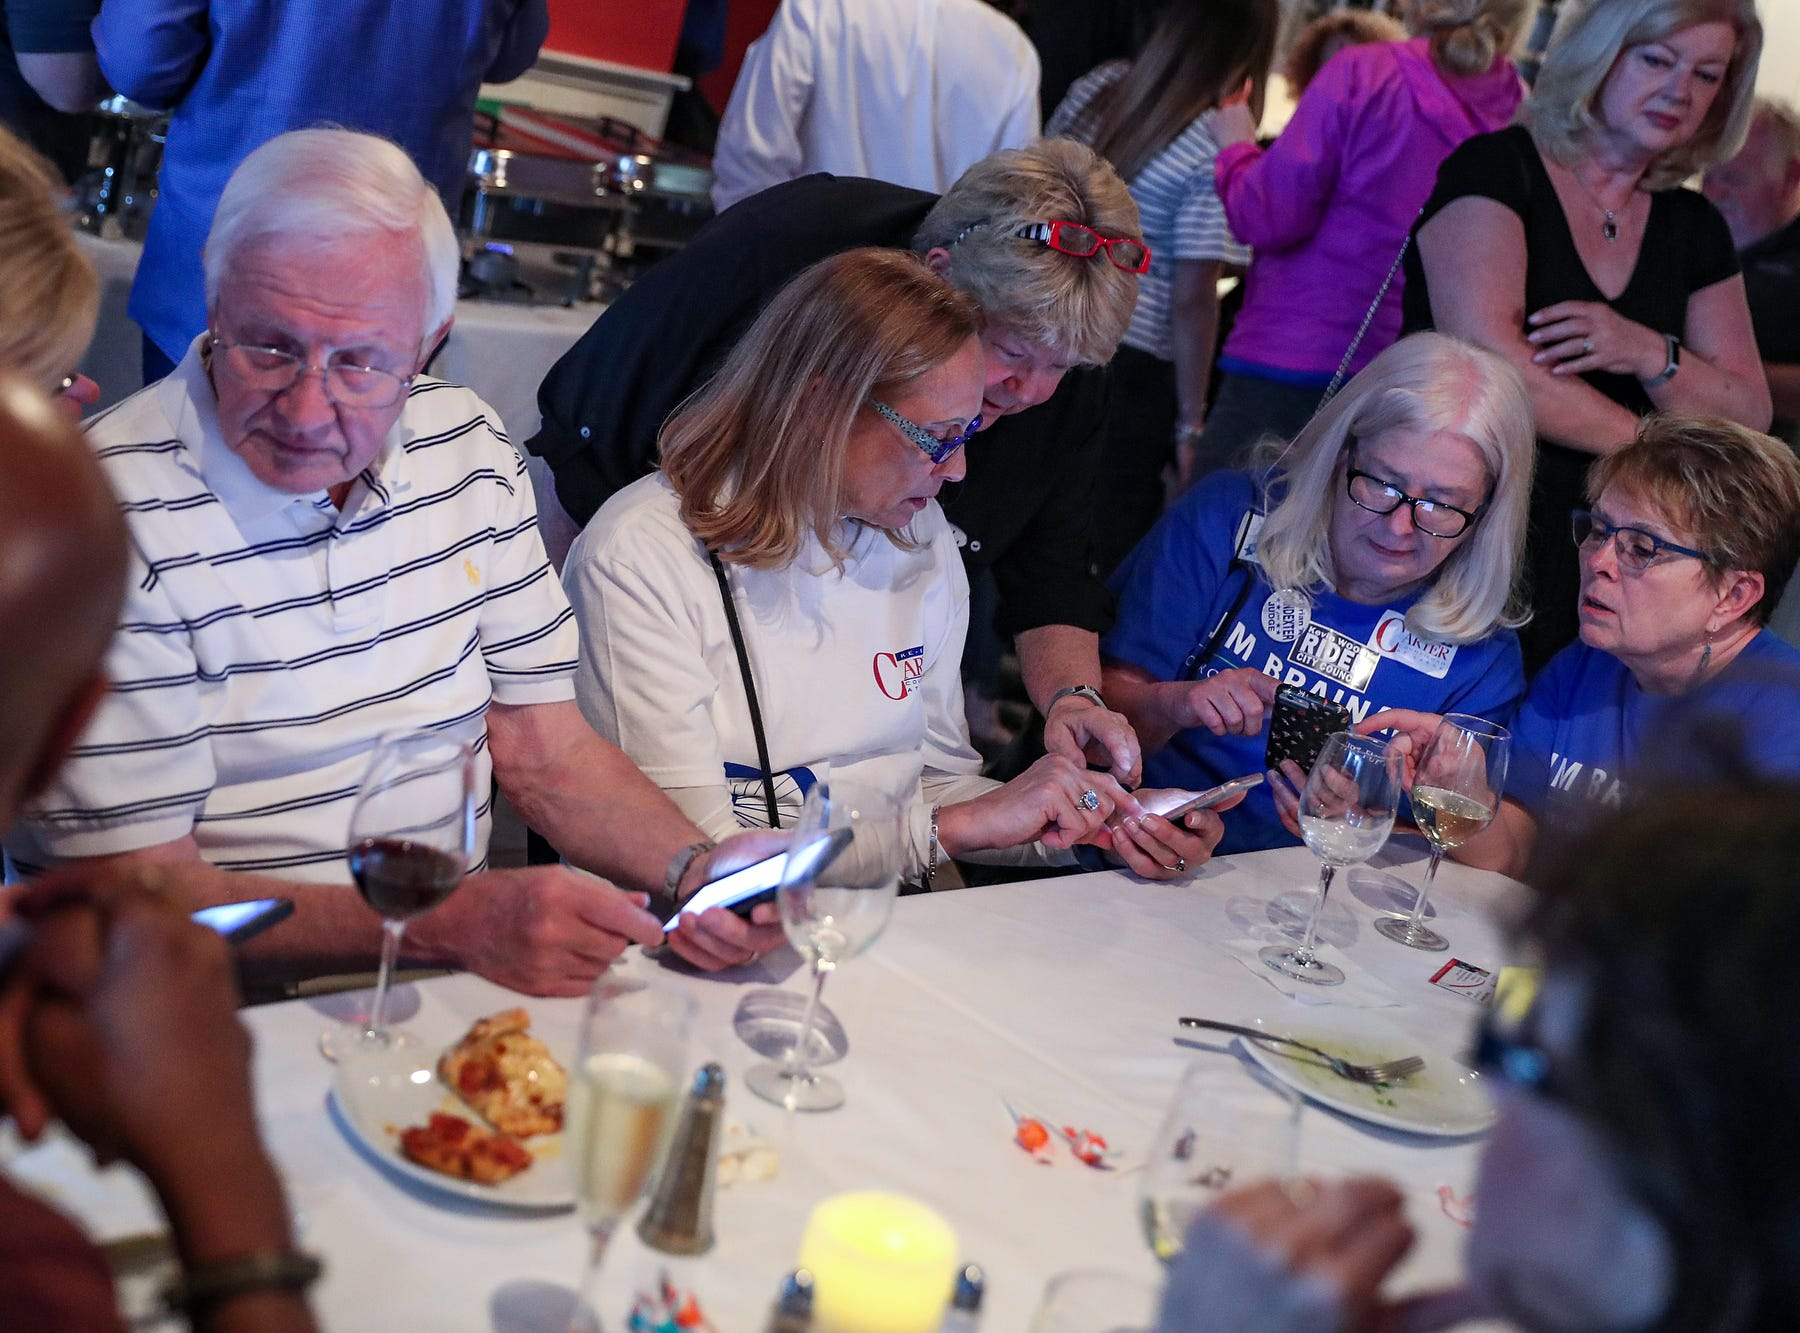 Supporters and friends watch their phones while awaiting election results for Carmel Republican candidates at DonatelloÕs Italian Restaurant in Carmel, Ind., Tuesday, May 7, 2019.